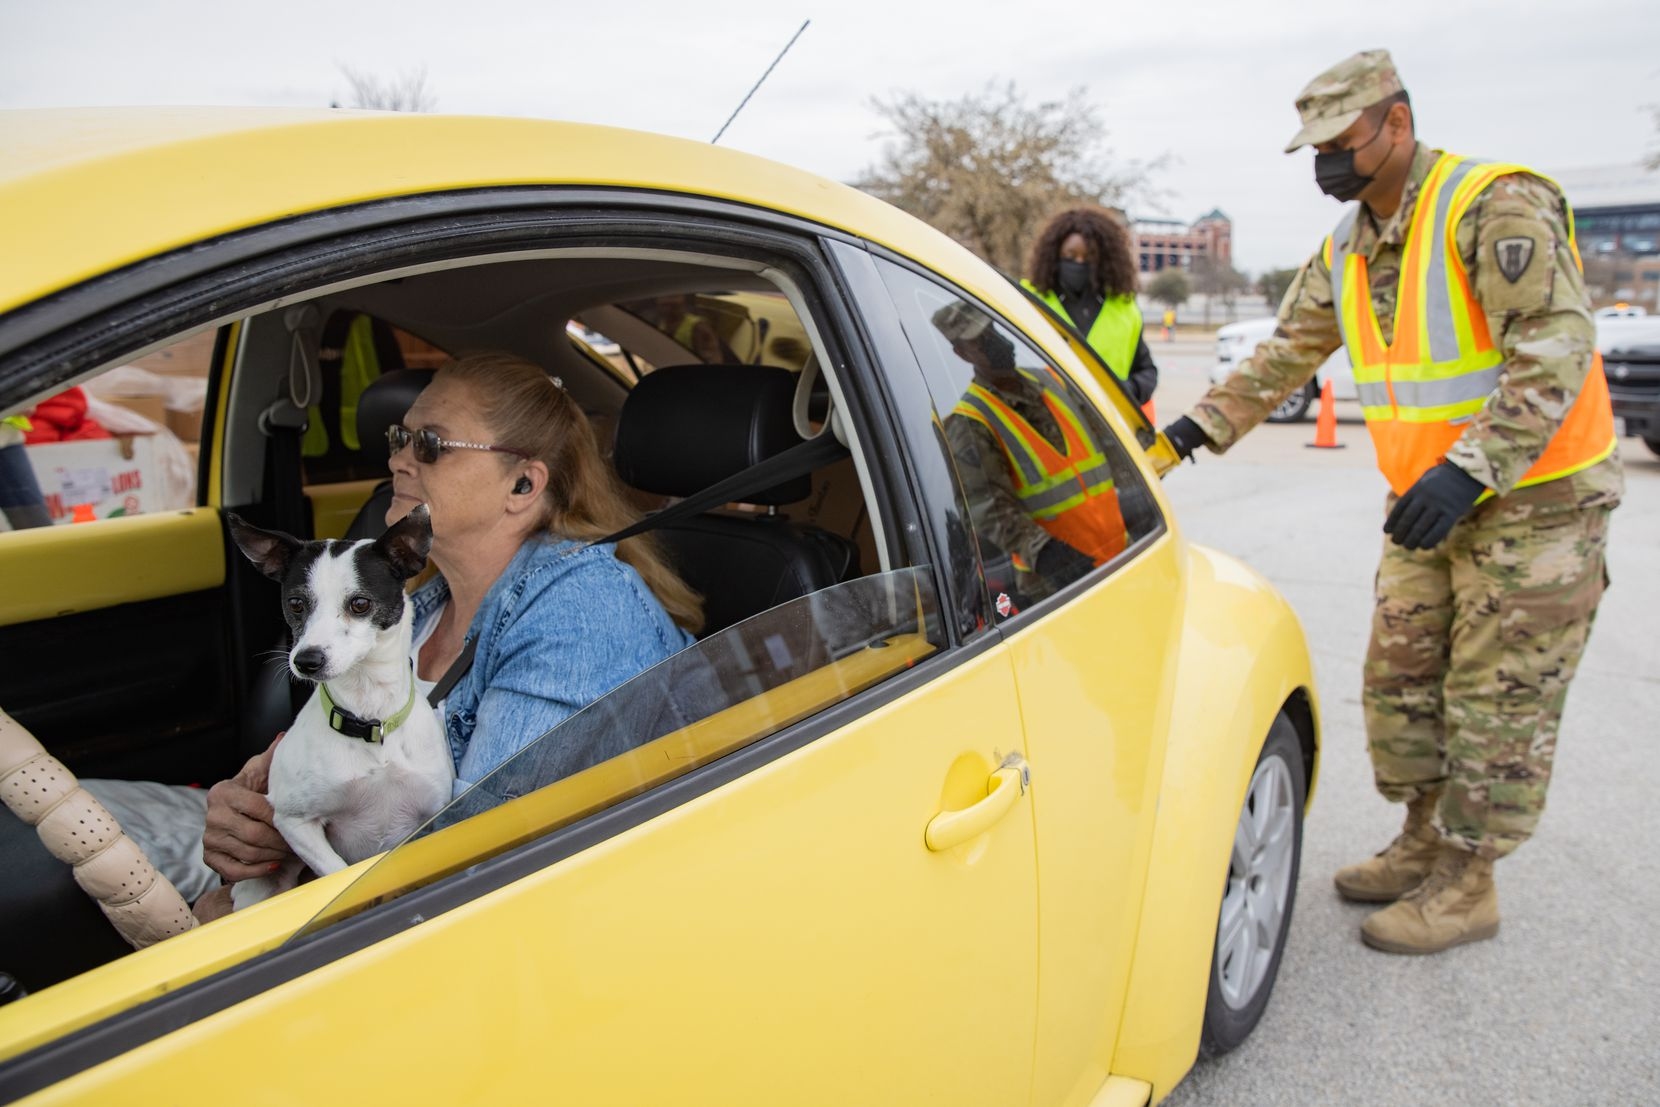 Tina Clark and dog Coco from Fort Worth waited as volunteers and members of the Texas National Guard loaded her car with food from the Tarrant Area Food Bank in a parking lot of Globe Life Field in Arlington on Thursday, Feb. 25, 2021.